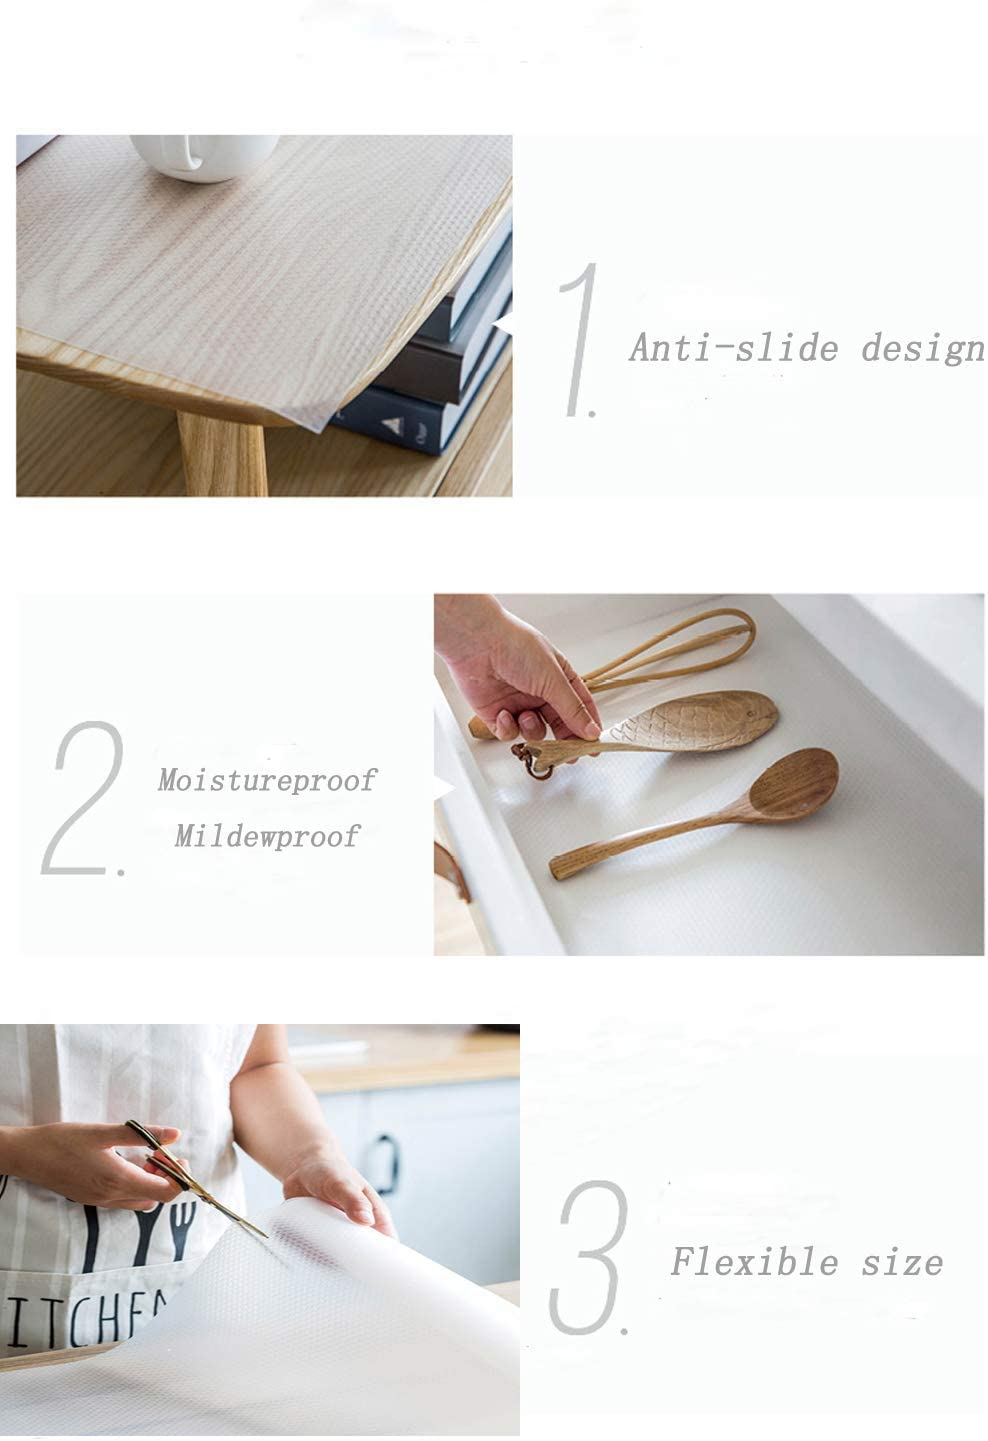 17.7 x 118 inches Bloss Drawer and Shelf Liner Non-Slip Non-Adhesive Water-Poof Durable Fridge Mat for Kitchen Shelf Cabinet Clear